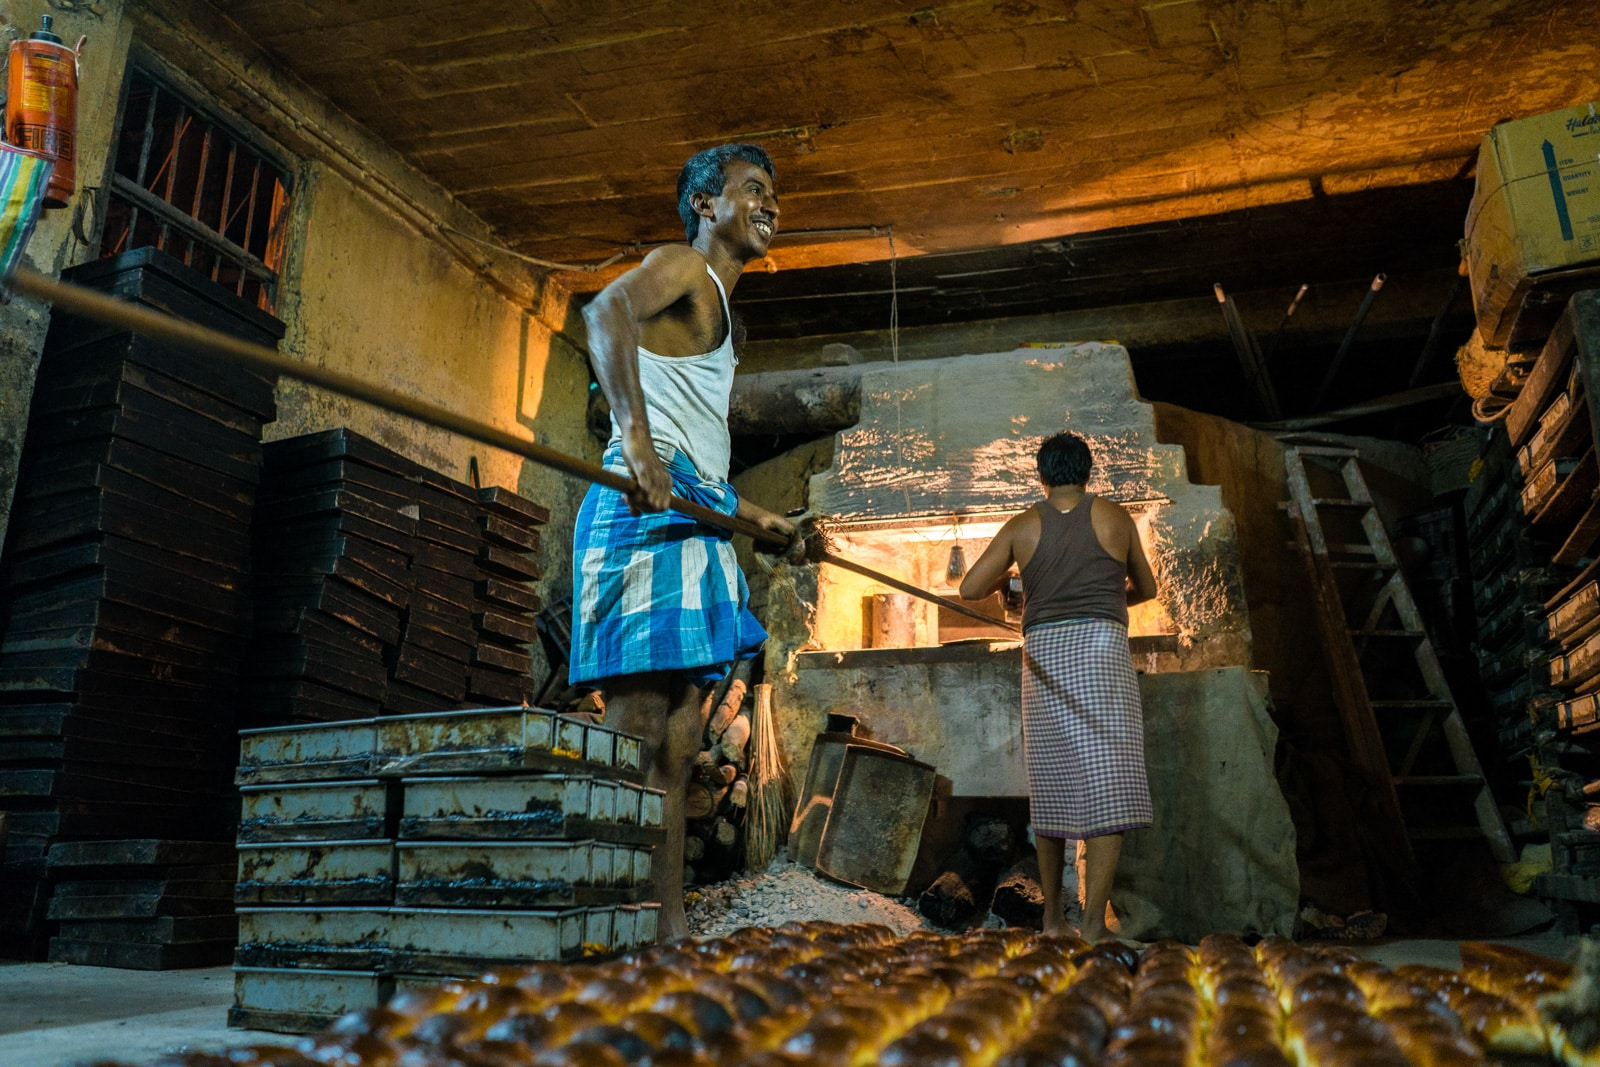 Reasons Kolkata is my favorite Indian megacity - Bread bakers by their oven - Lost With Purpose travel blog